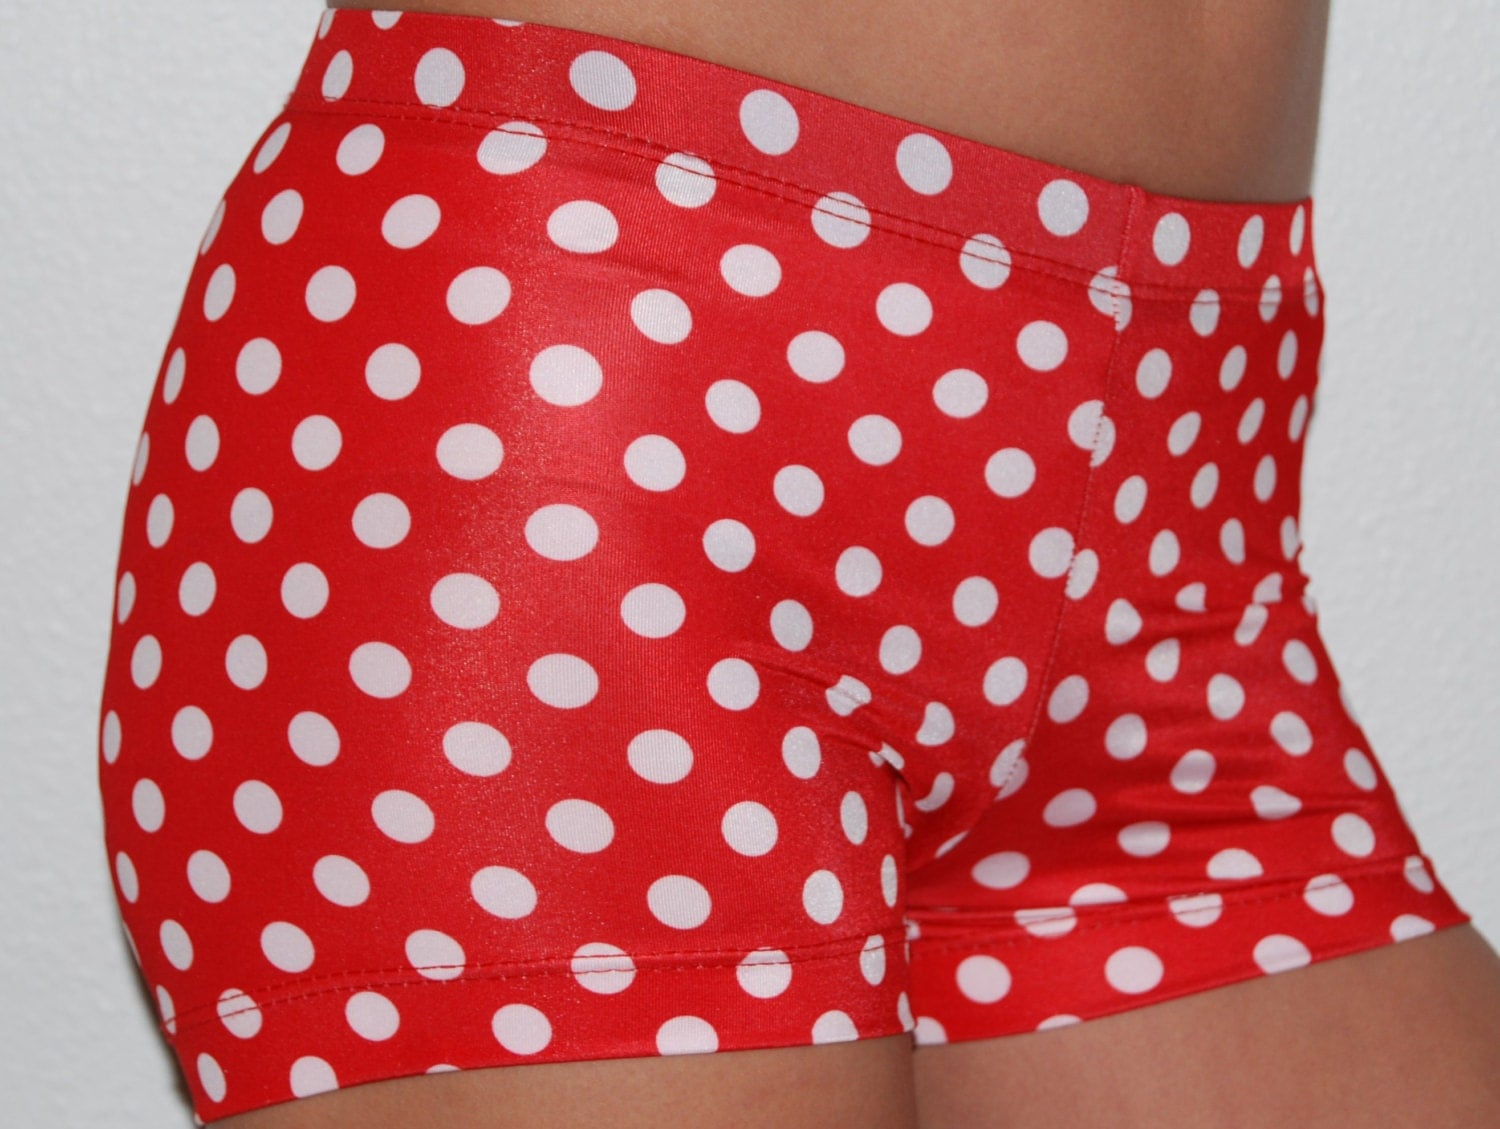 Find great deals on eBay for red polka dot shorts. Shop with confidence.